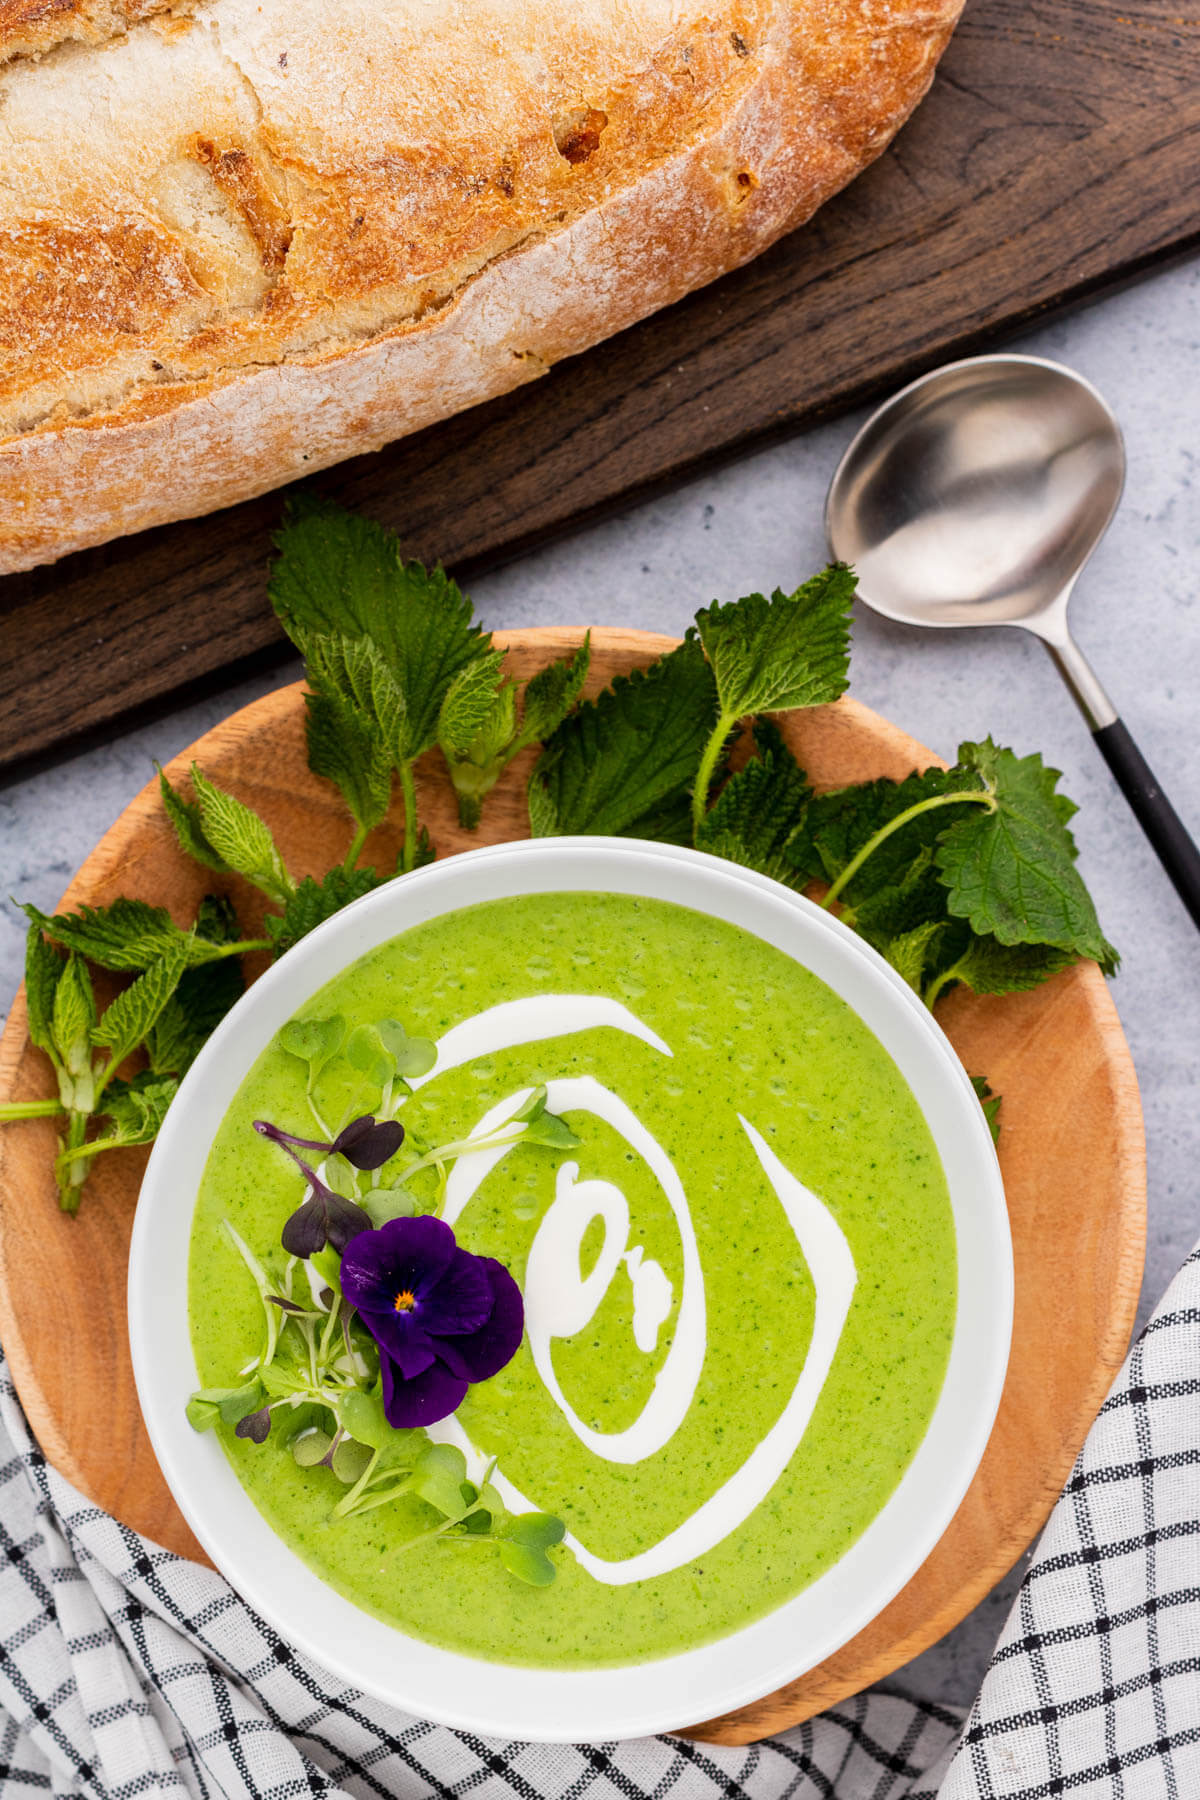 A bowl of bright green nettle soup with swirls of white cream and microgreen edible flower garnish.